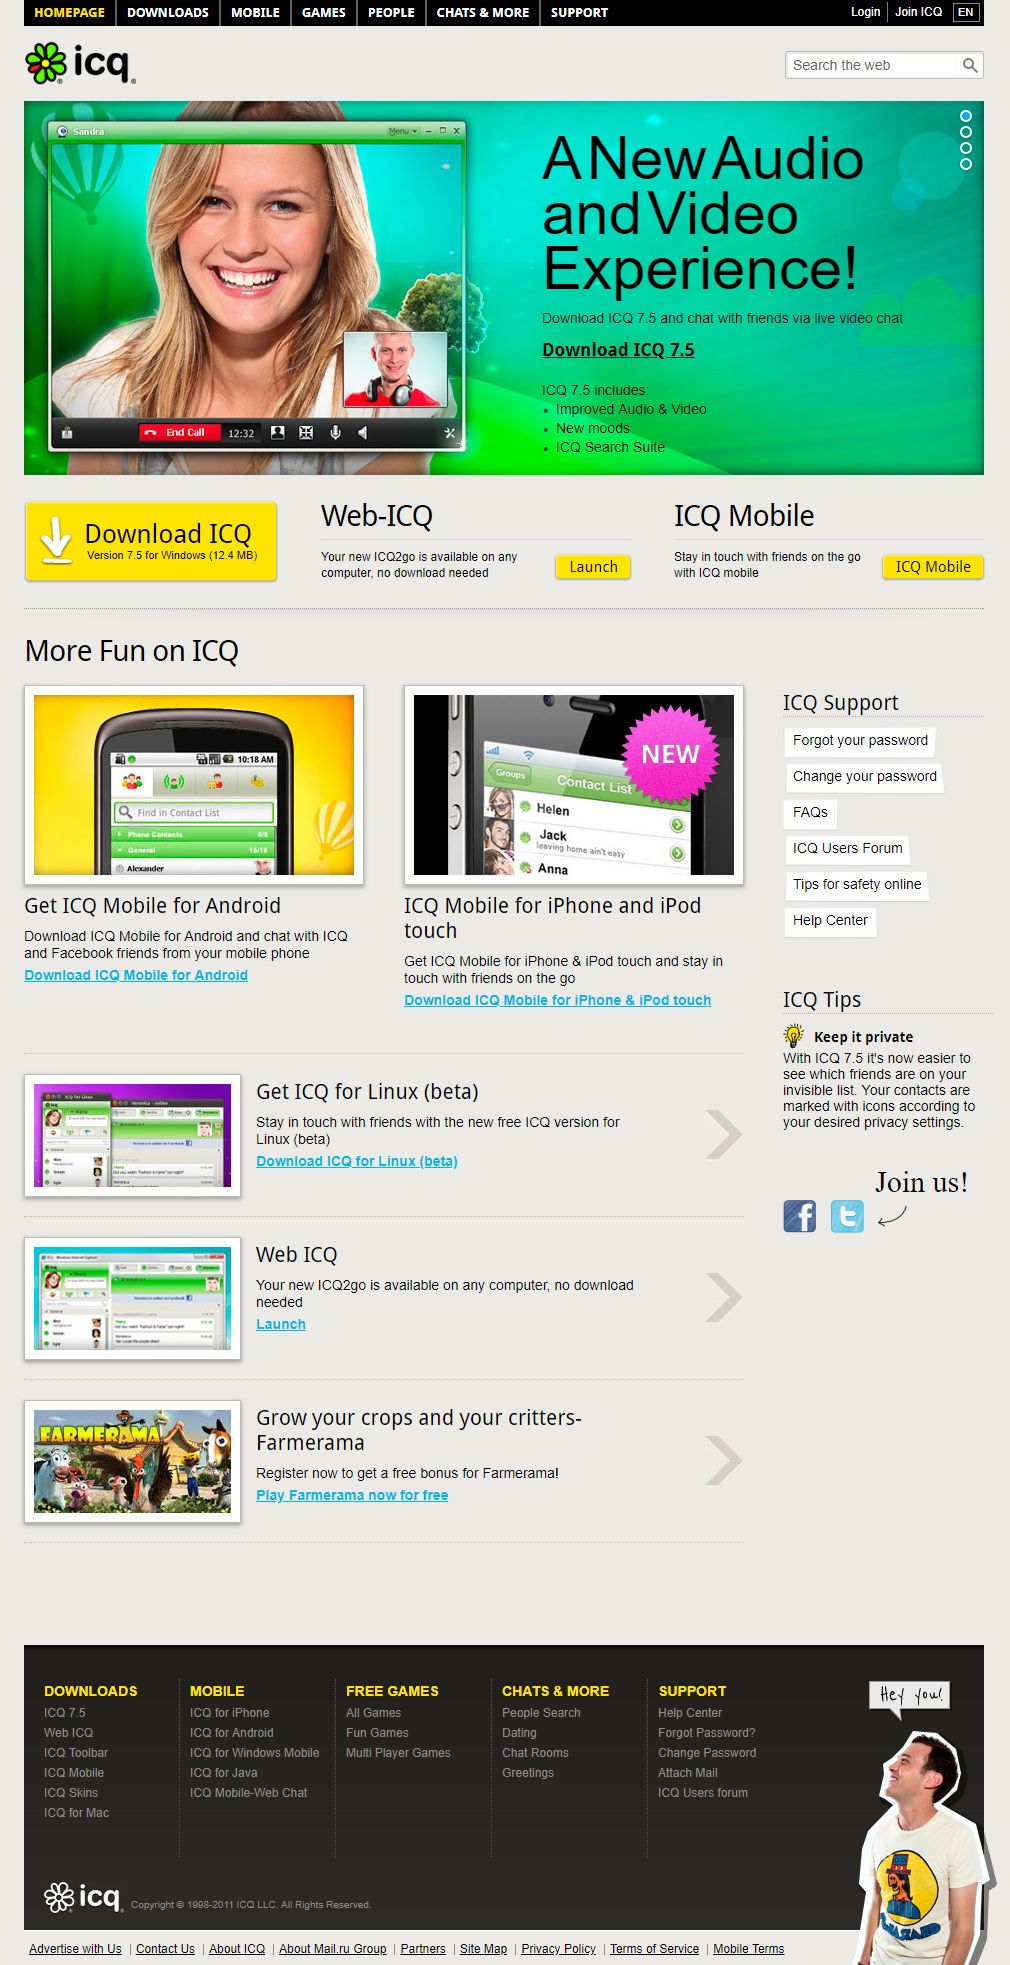 ICQ in 2011